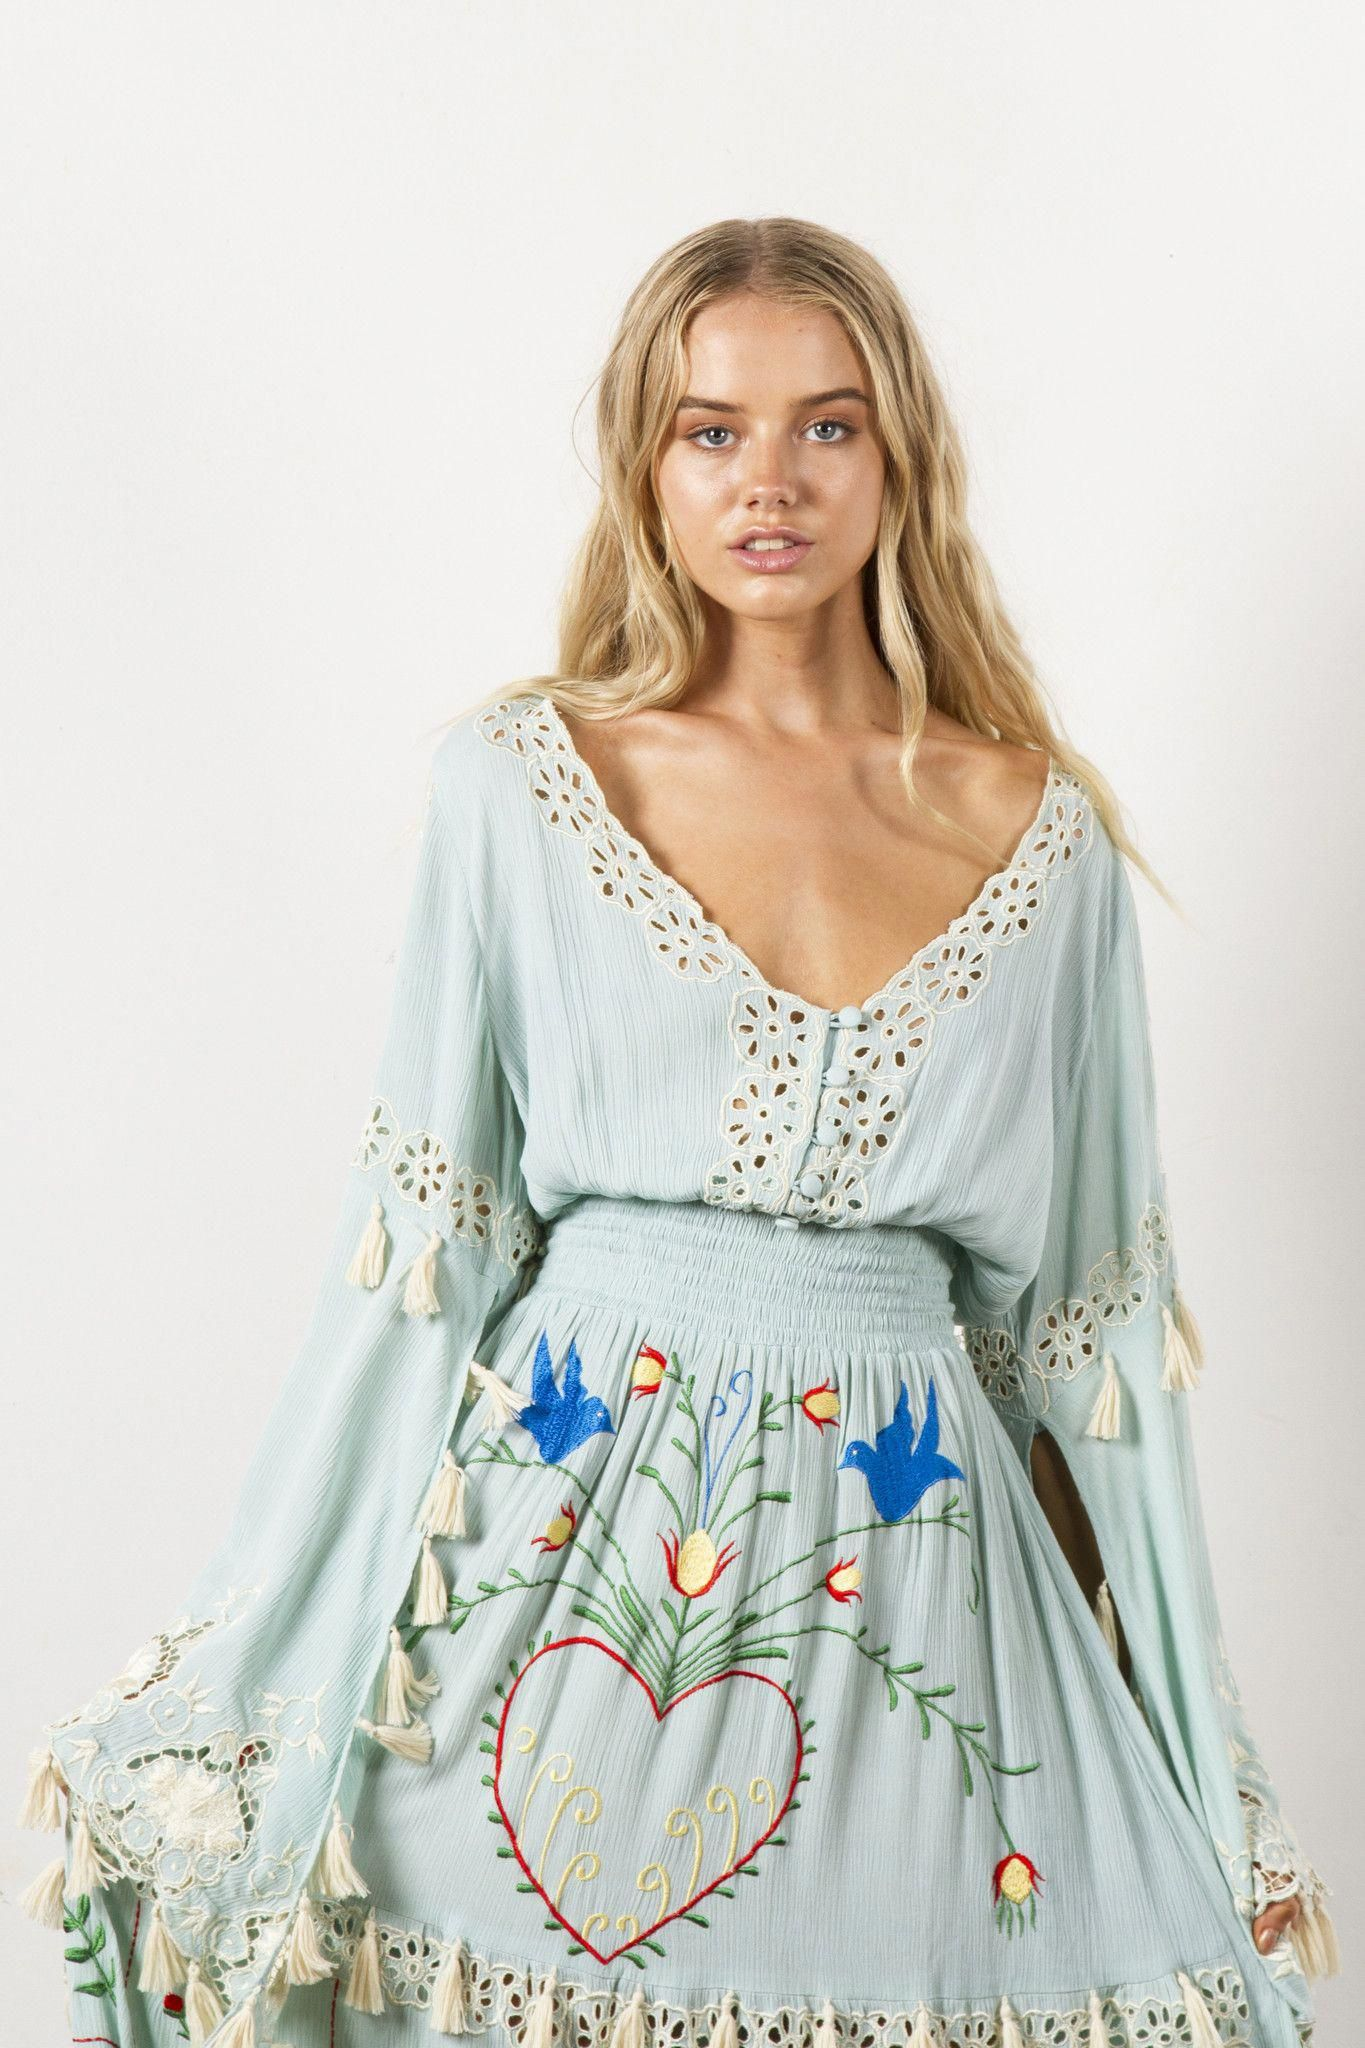 721fc0ef34c FILLYBOO -  LITTLE BEAR  - HAND EMBROIDERED MAXI DRESS - PASTEL JADE   daydresses